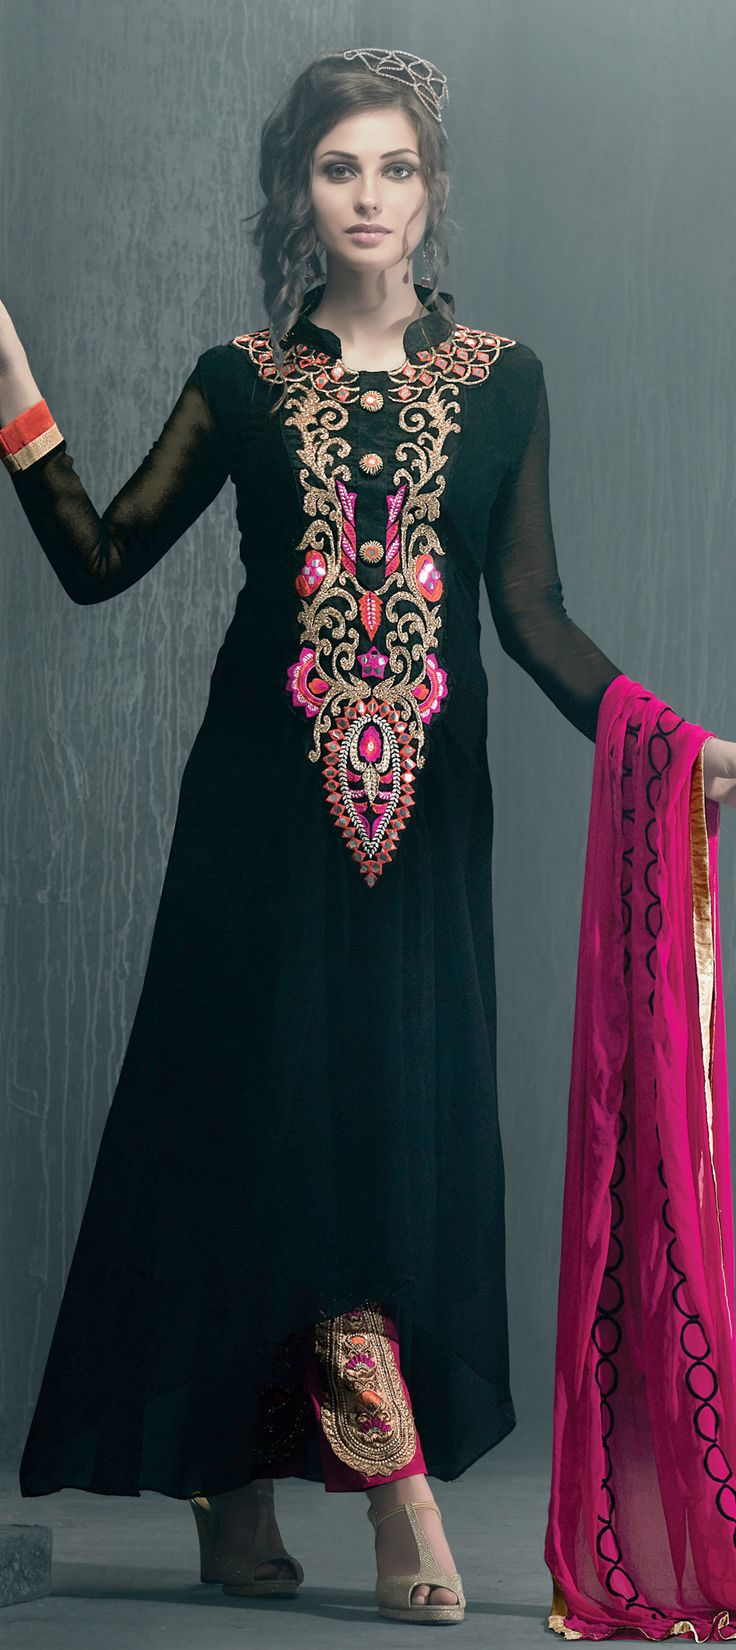 431524: Black and Grey color family stitched Party Wear Salwar Kameez .